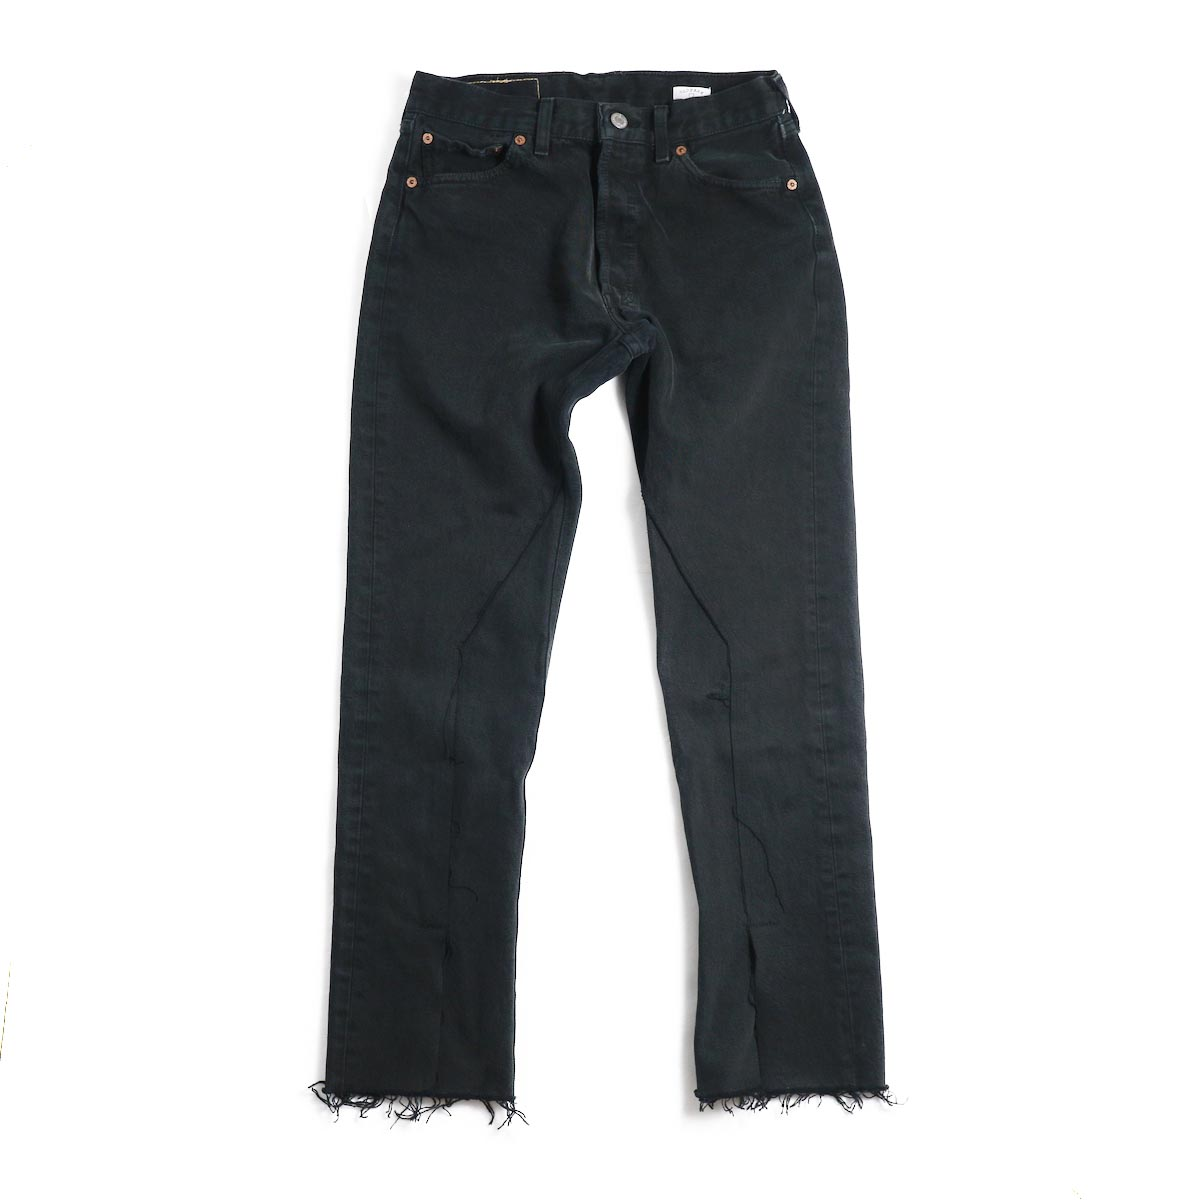 OLD PARK / Slit Jeans -Black Ssize(F)